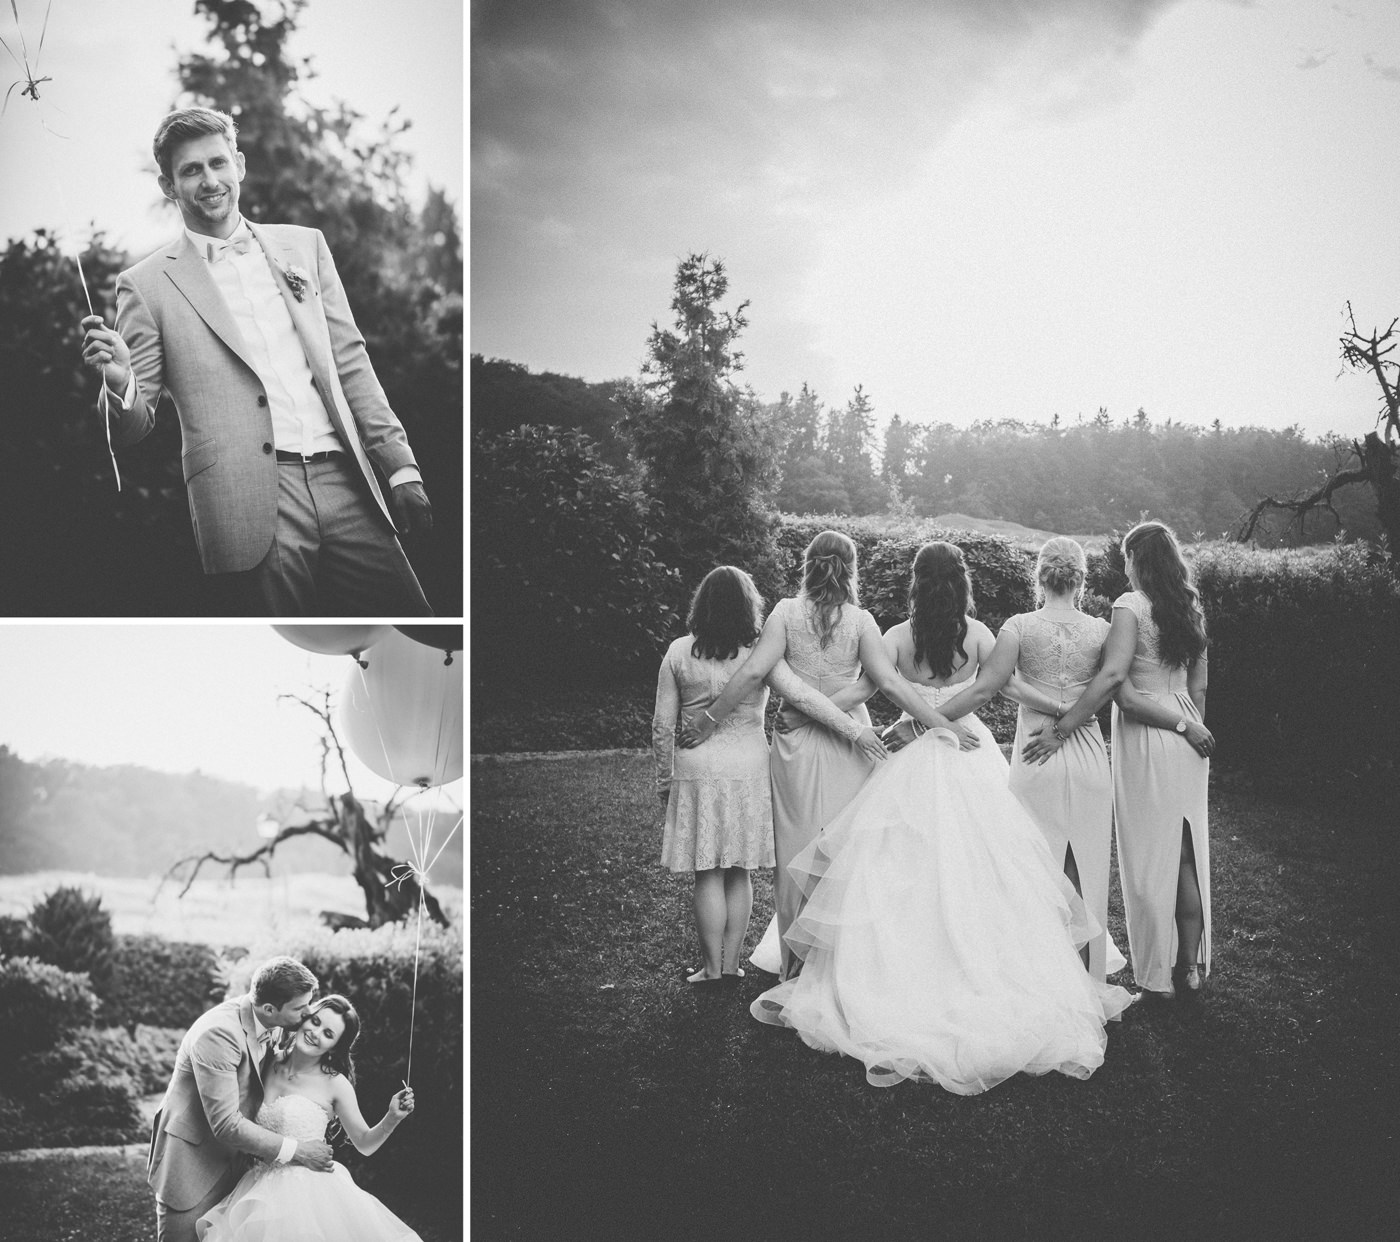 Wedding at Hofgut Georgenthal - a fairytale wedding with fantastic portraits in the hills of the Taunus